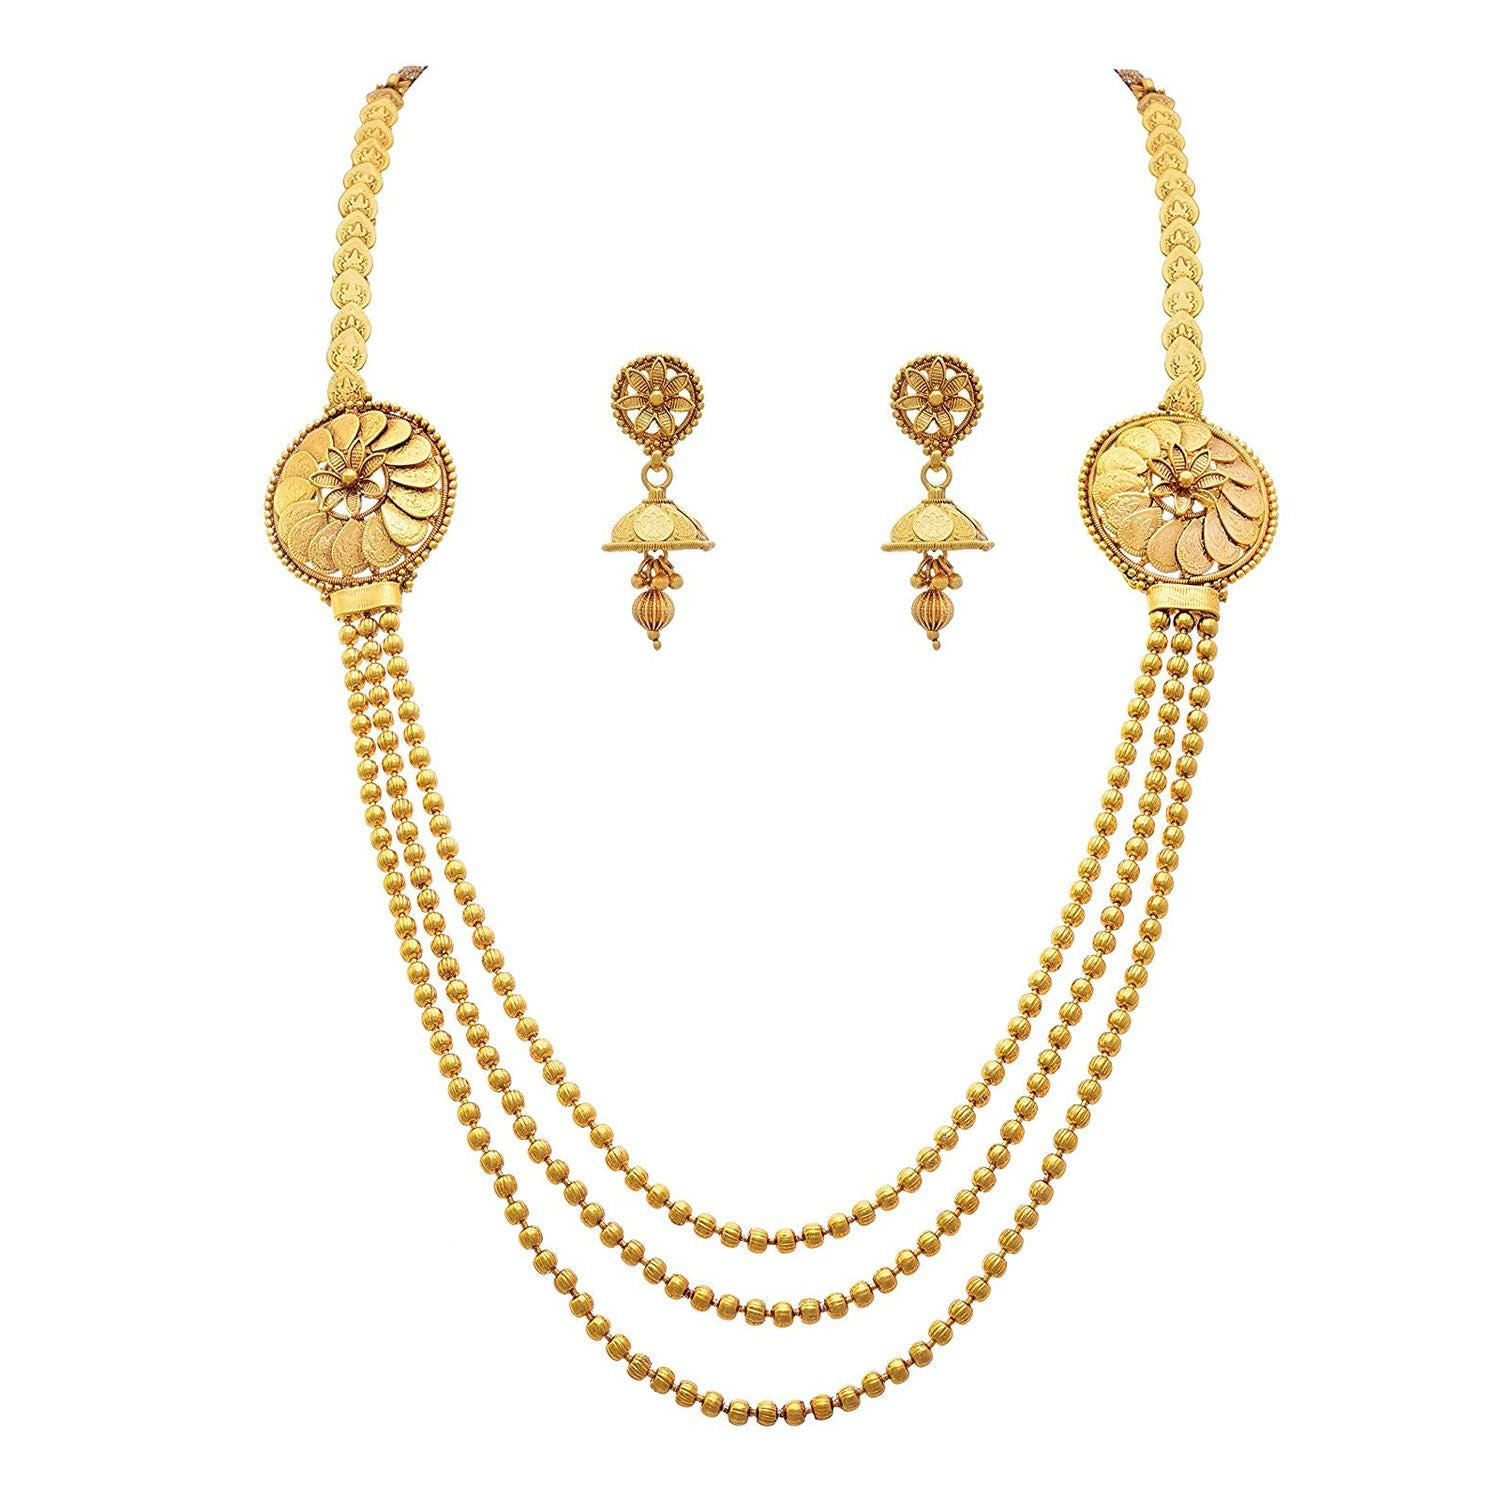 JFL - Traditional Ethnic Temple One Gram Gold Plated Mahalaxmi Bead Designer Necklace Set with Jhumka Earring for Women & Girls